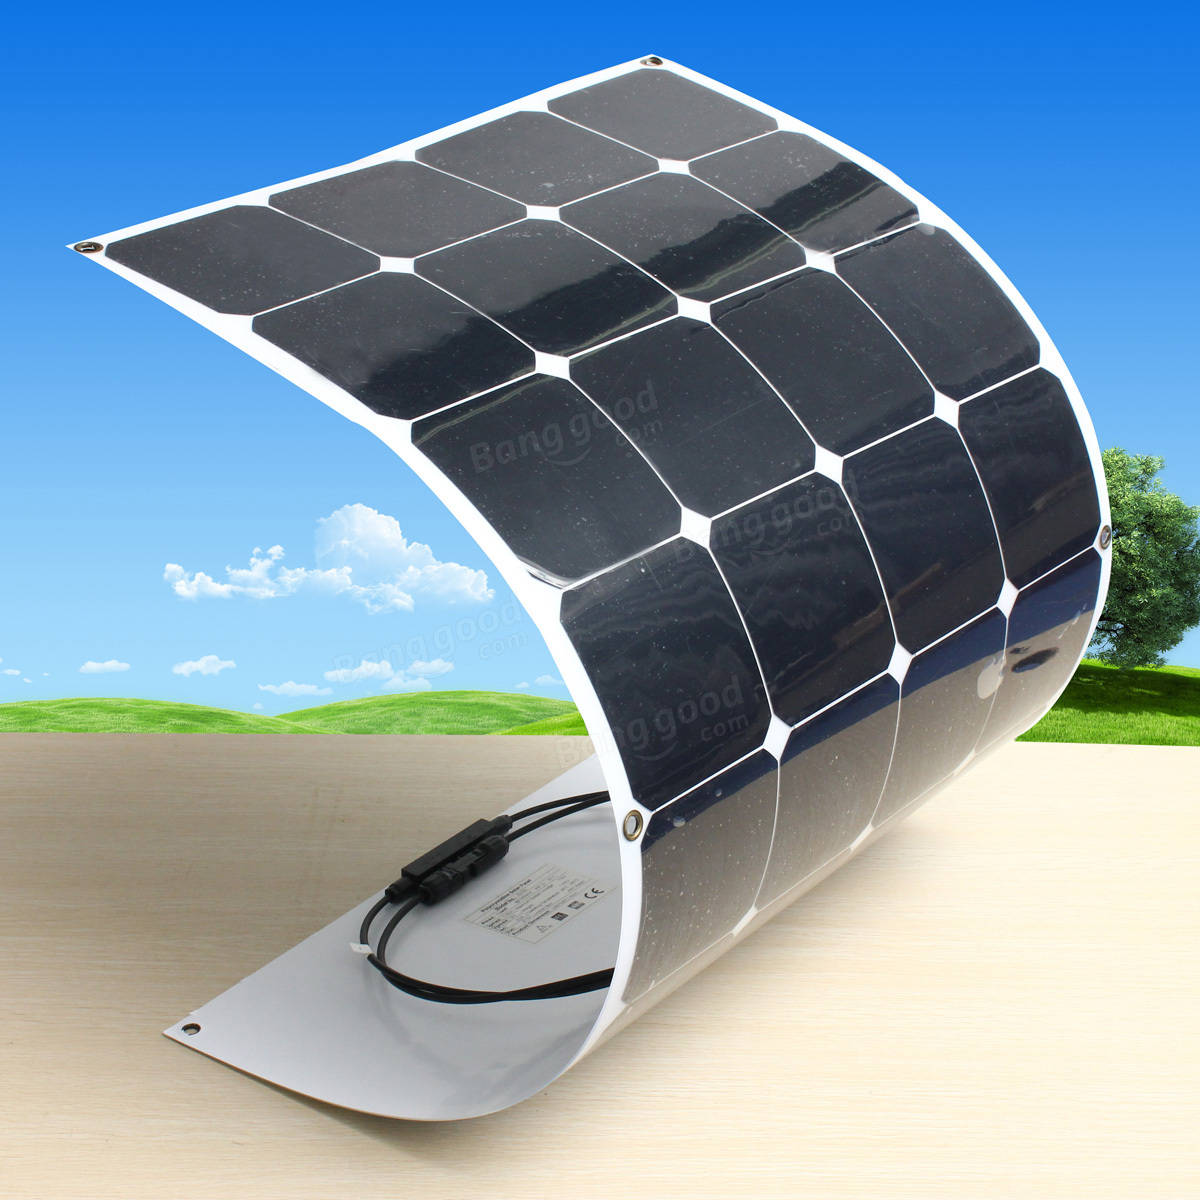 Aquarius Usv besides Innovative Jacket With Solar Panels as well Megazine moreover 920460 as well G. on lightweight flexible solar panels